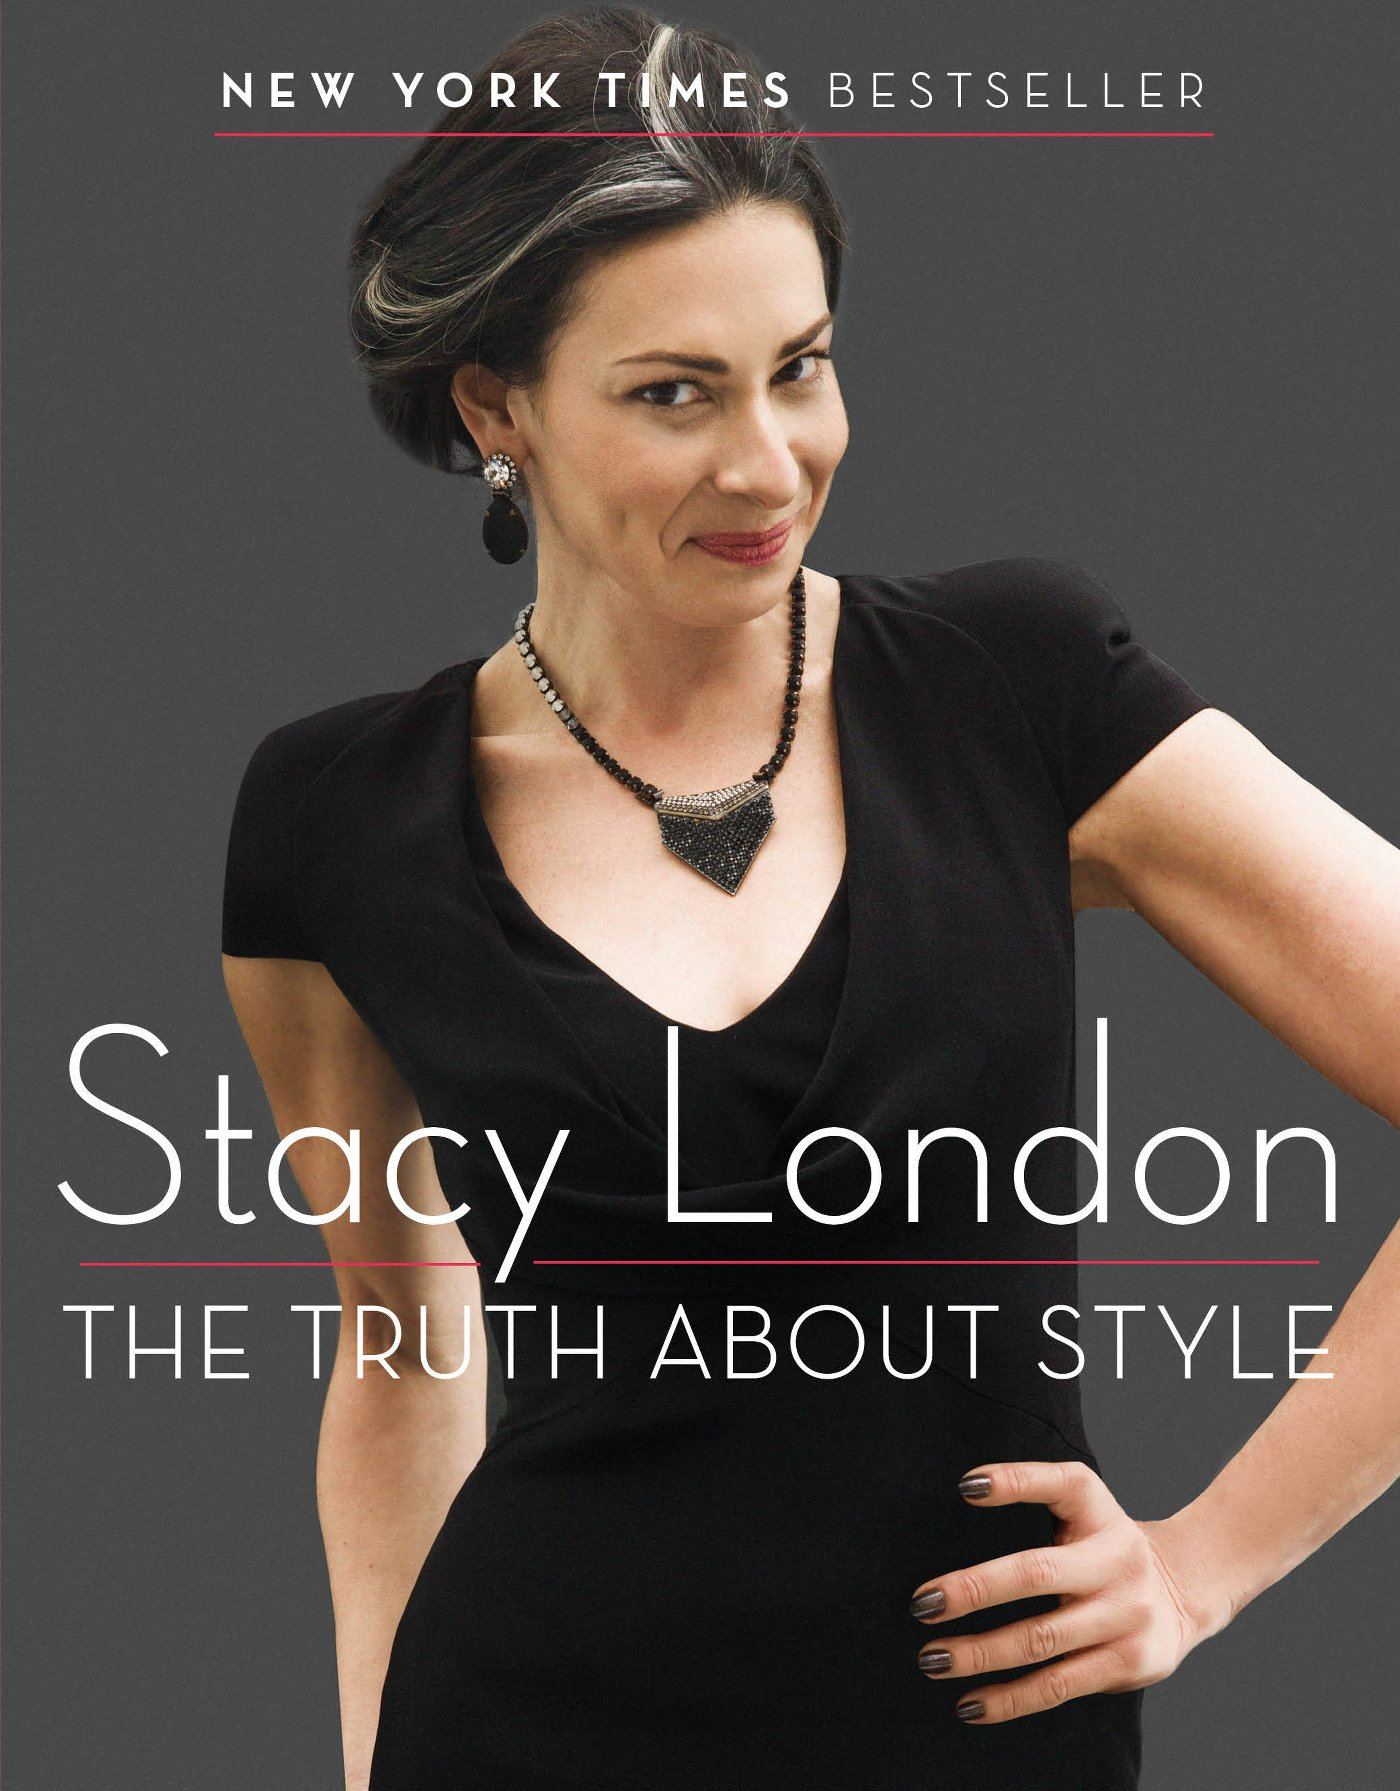 stacy london makeover